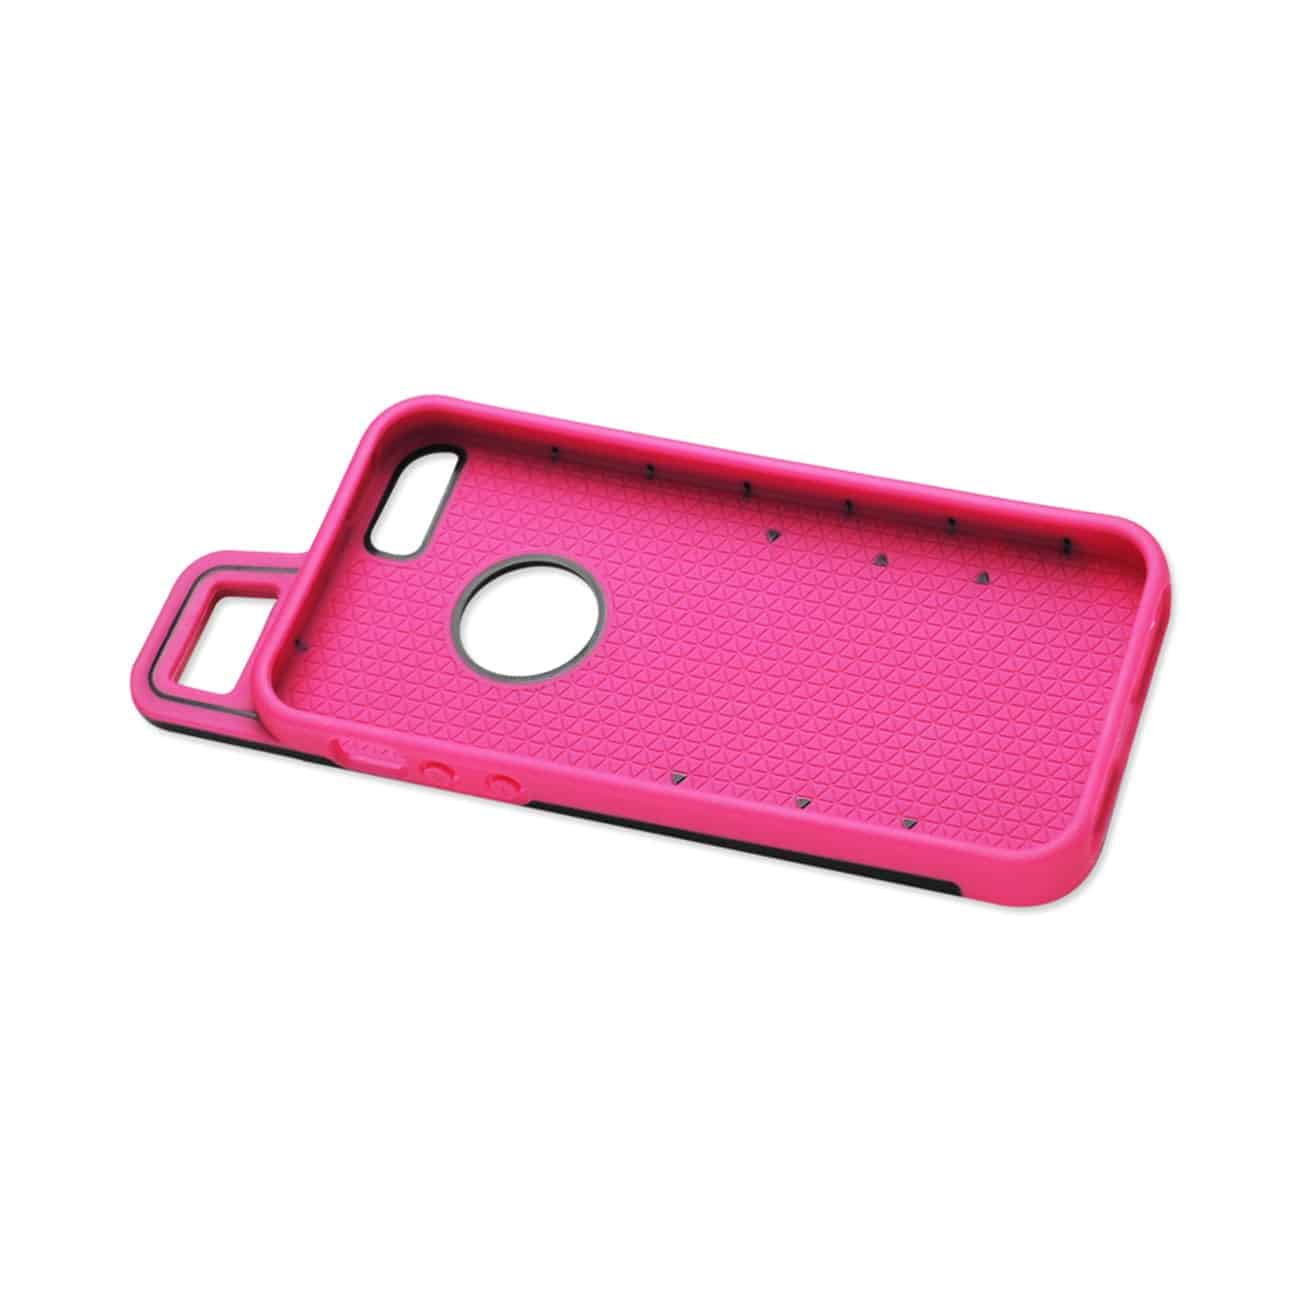 IPHONE 5/5S/SE DROPPROOF WORKOUT HYBRID CASE WITH HOOK IN BLACK HOT PINK